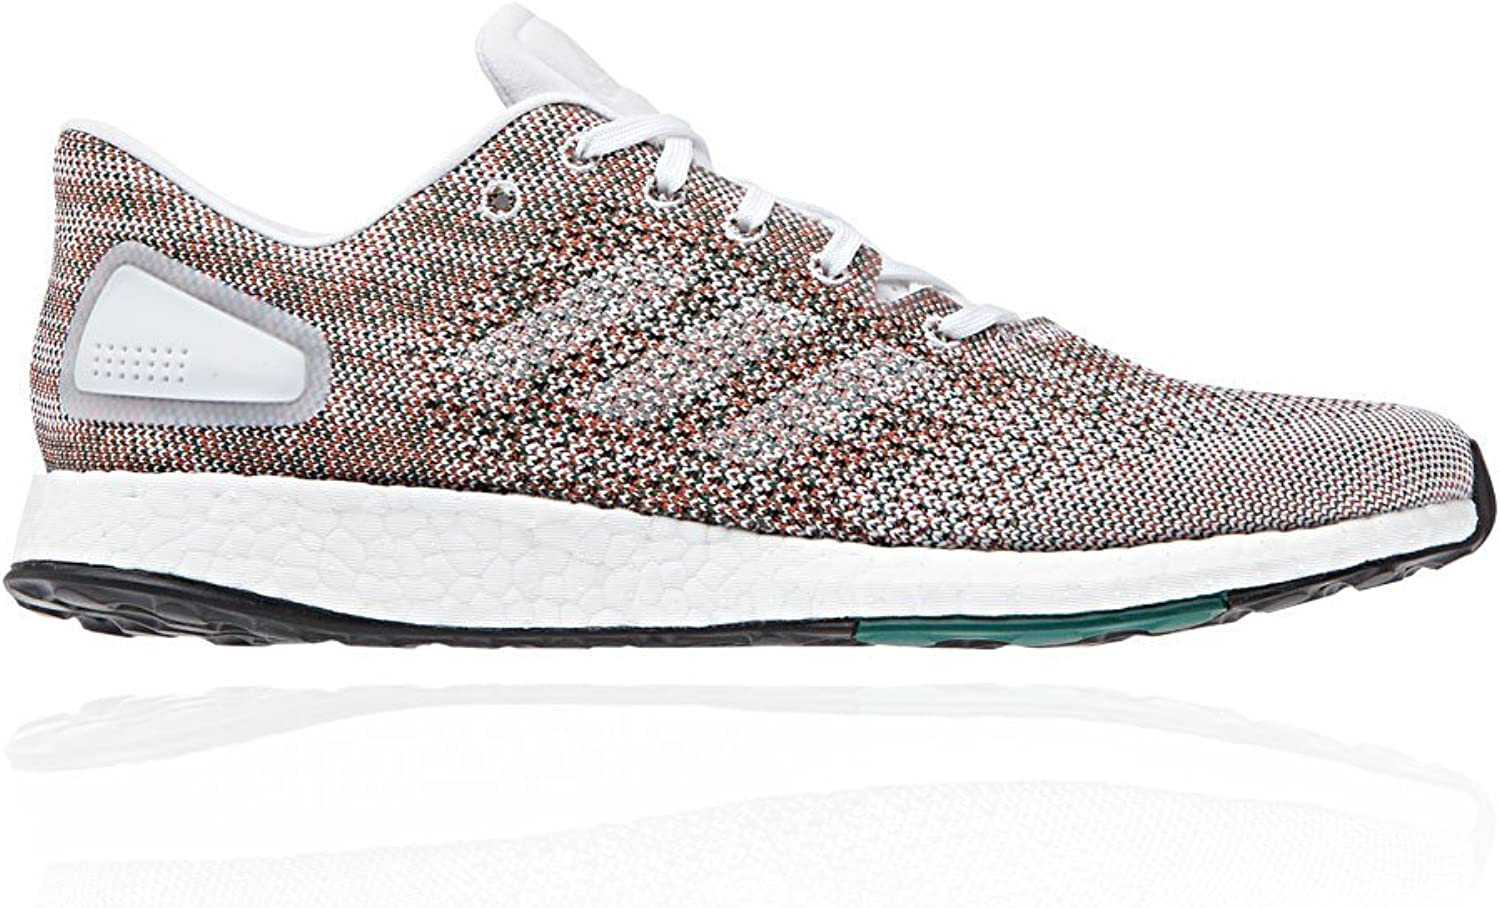 Adidas Men's Pureboost DPR Training shoes